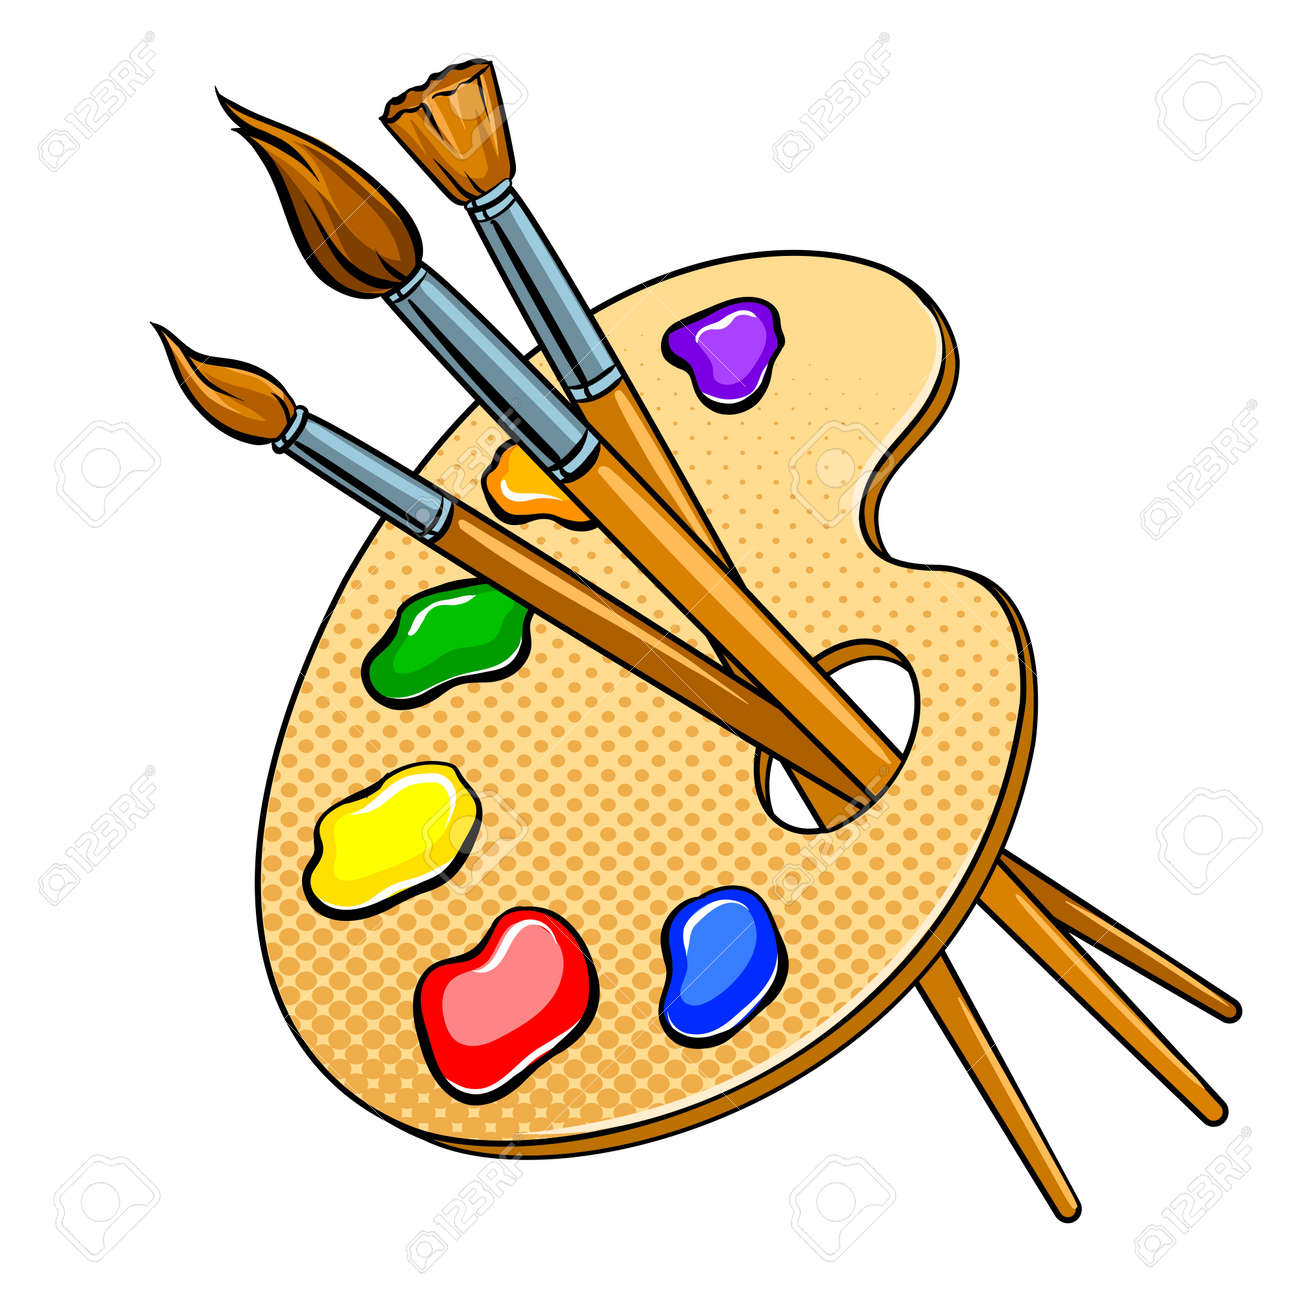 Palette with paints and brushes pop art vector - 92309248